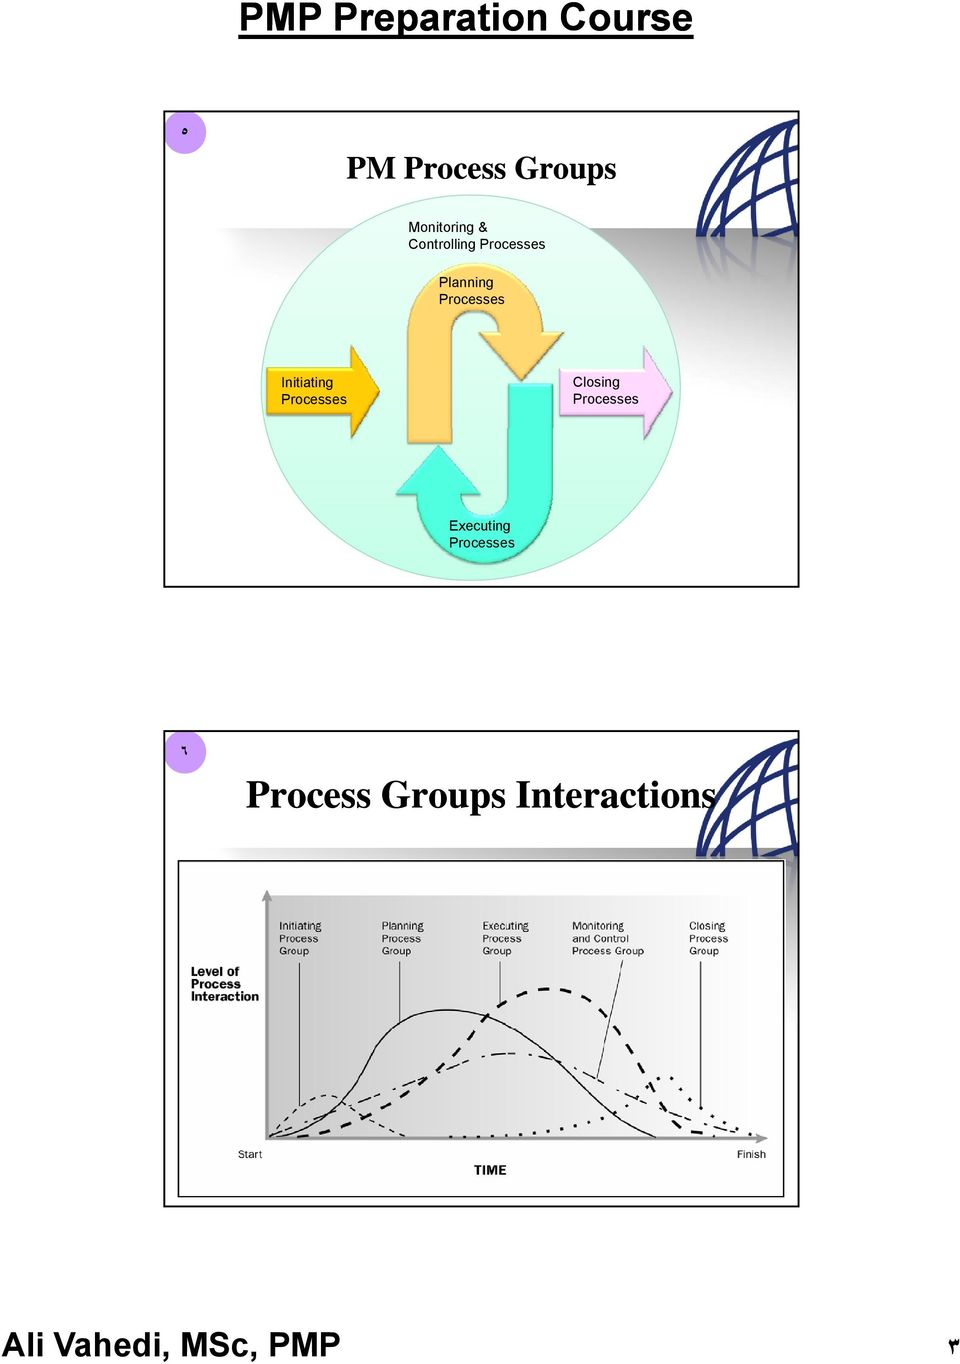 Processes Closing Processes Executing